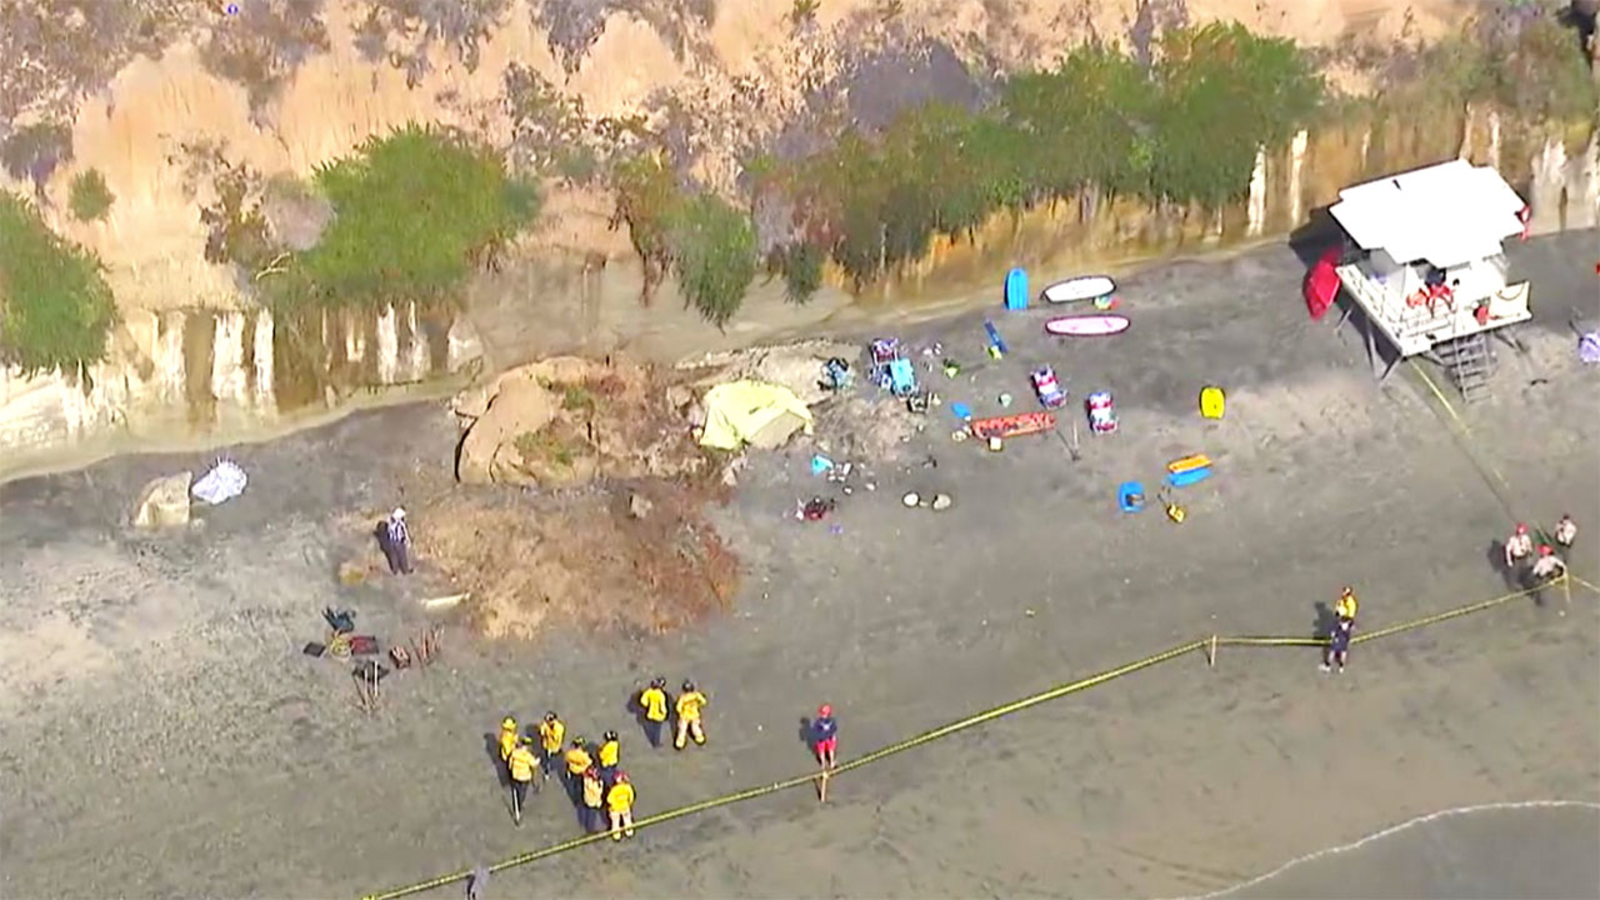 Collapsing cliff claims 3 lives along San Diego-area beach